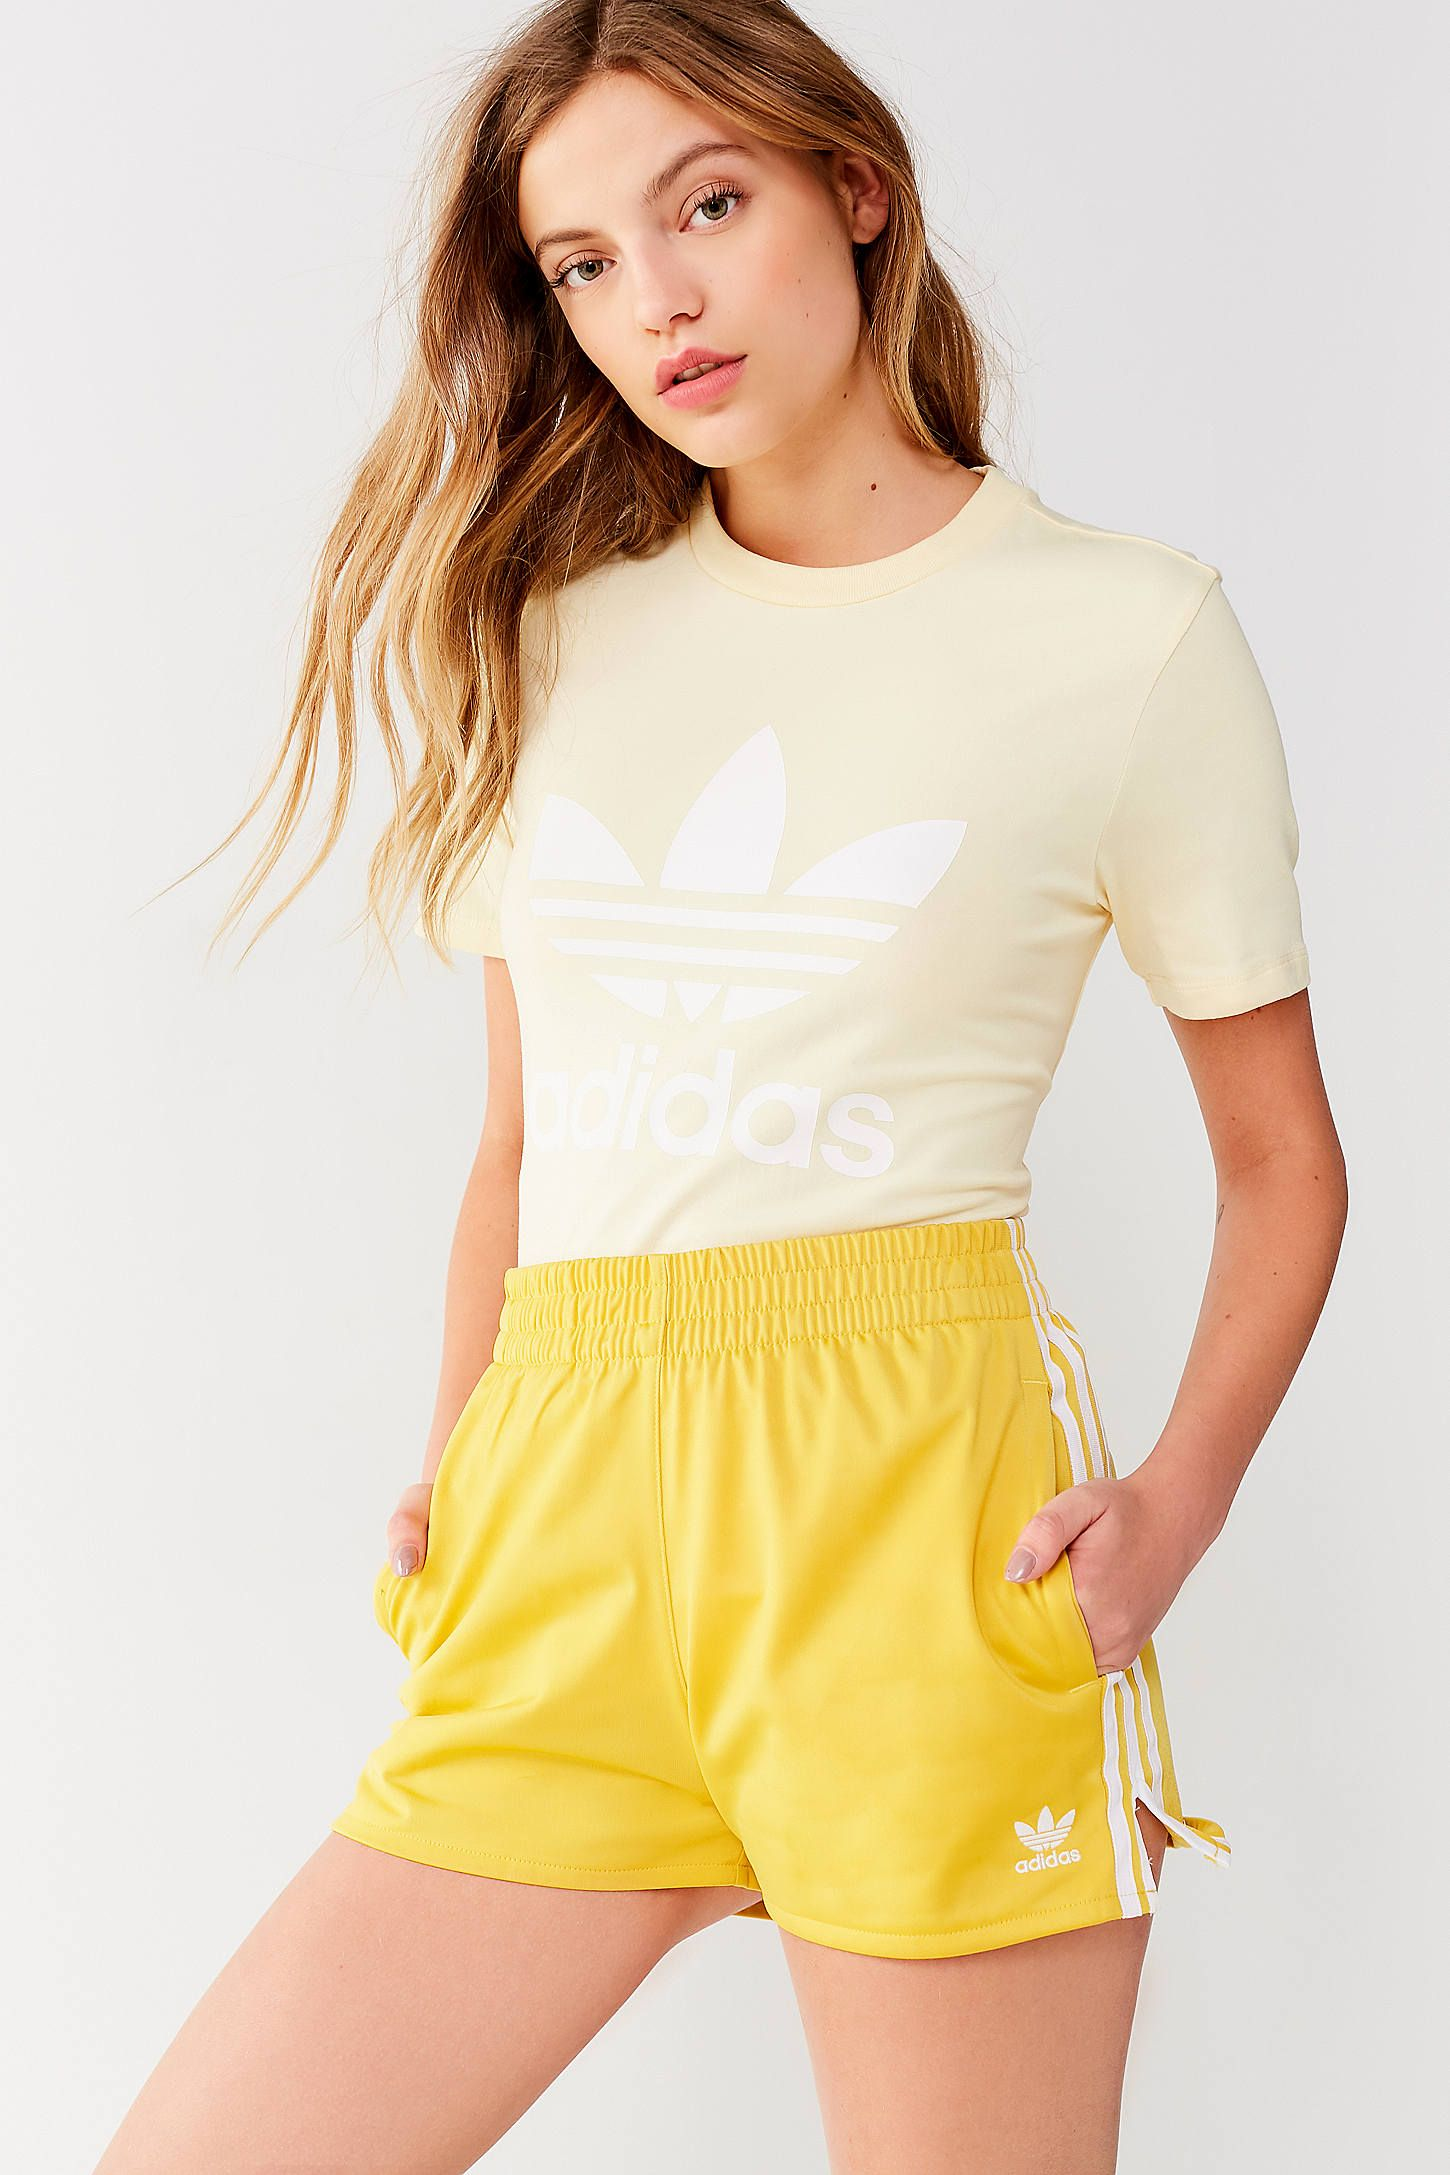 63ed203b704 Shop adidas Originals 3 Stripes Short at Urban Outfitters today. We carry  all the latest styles